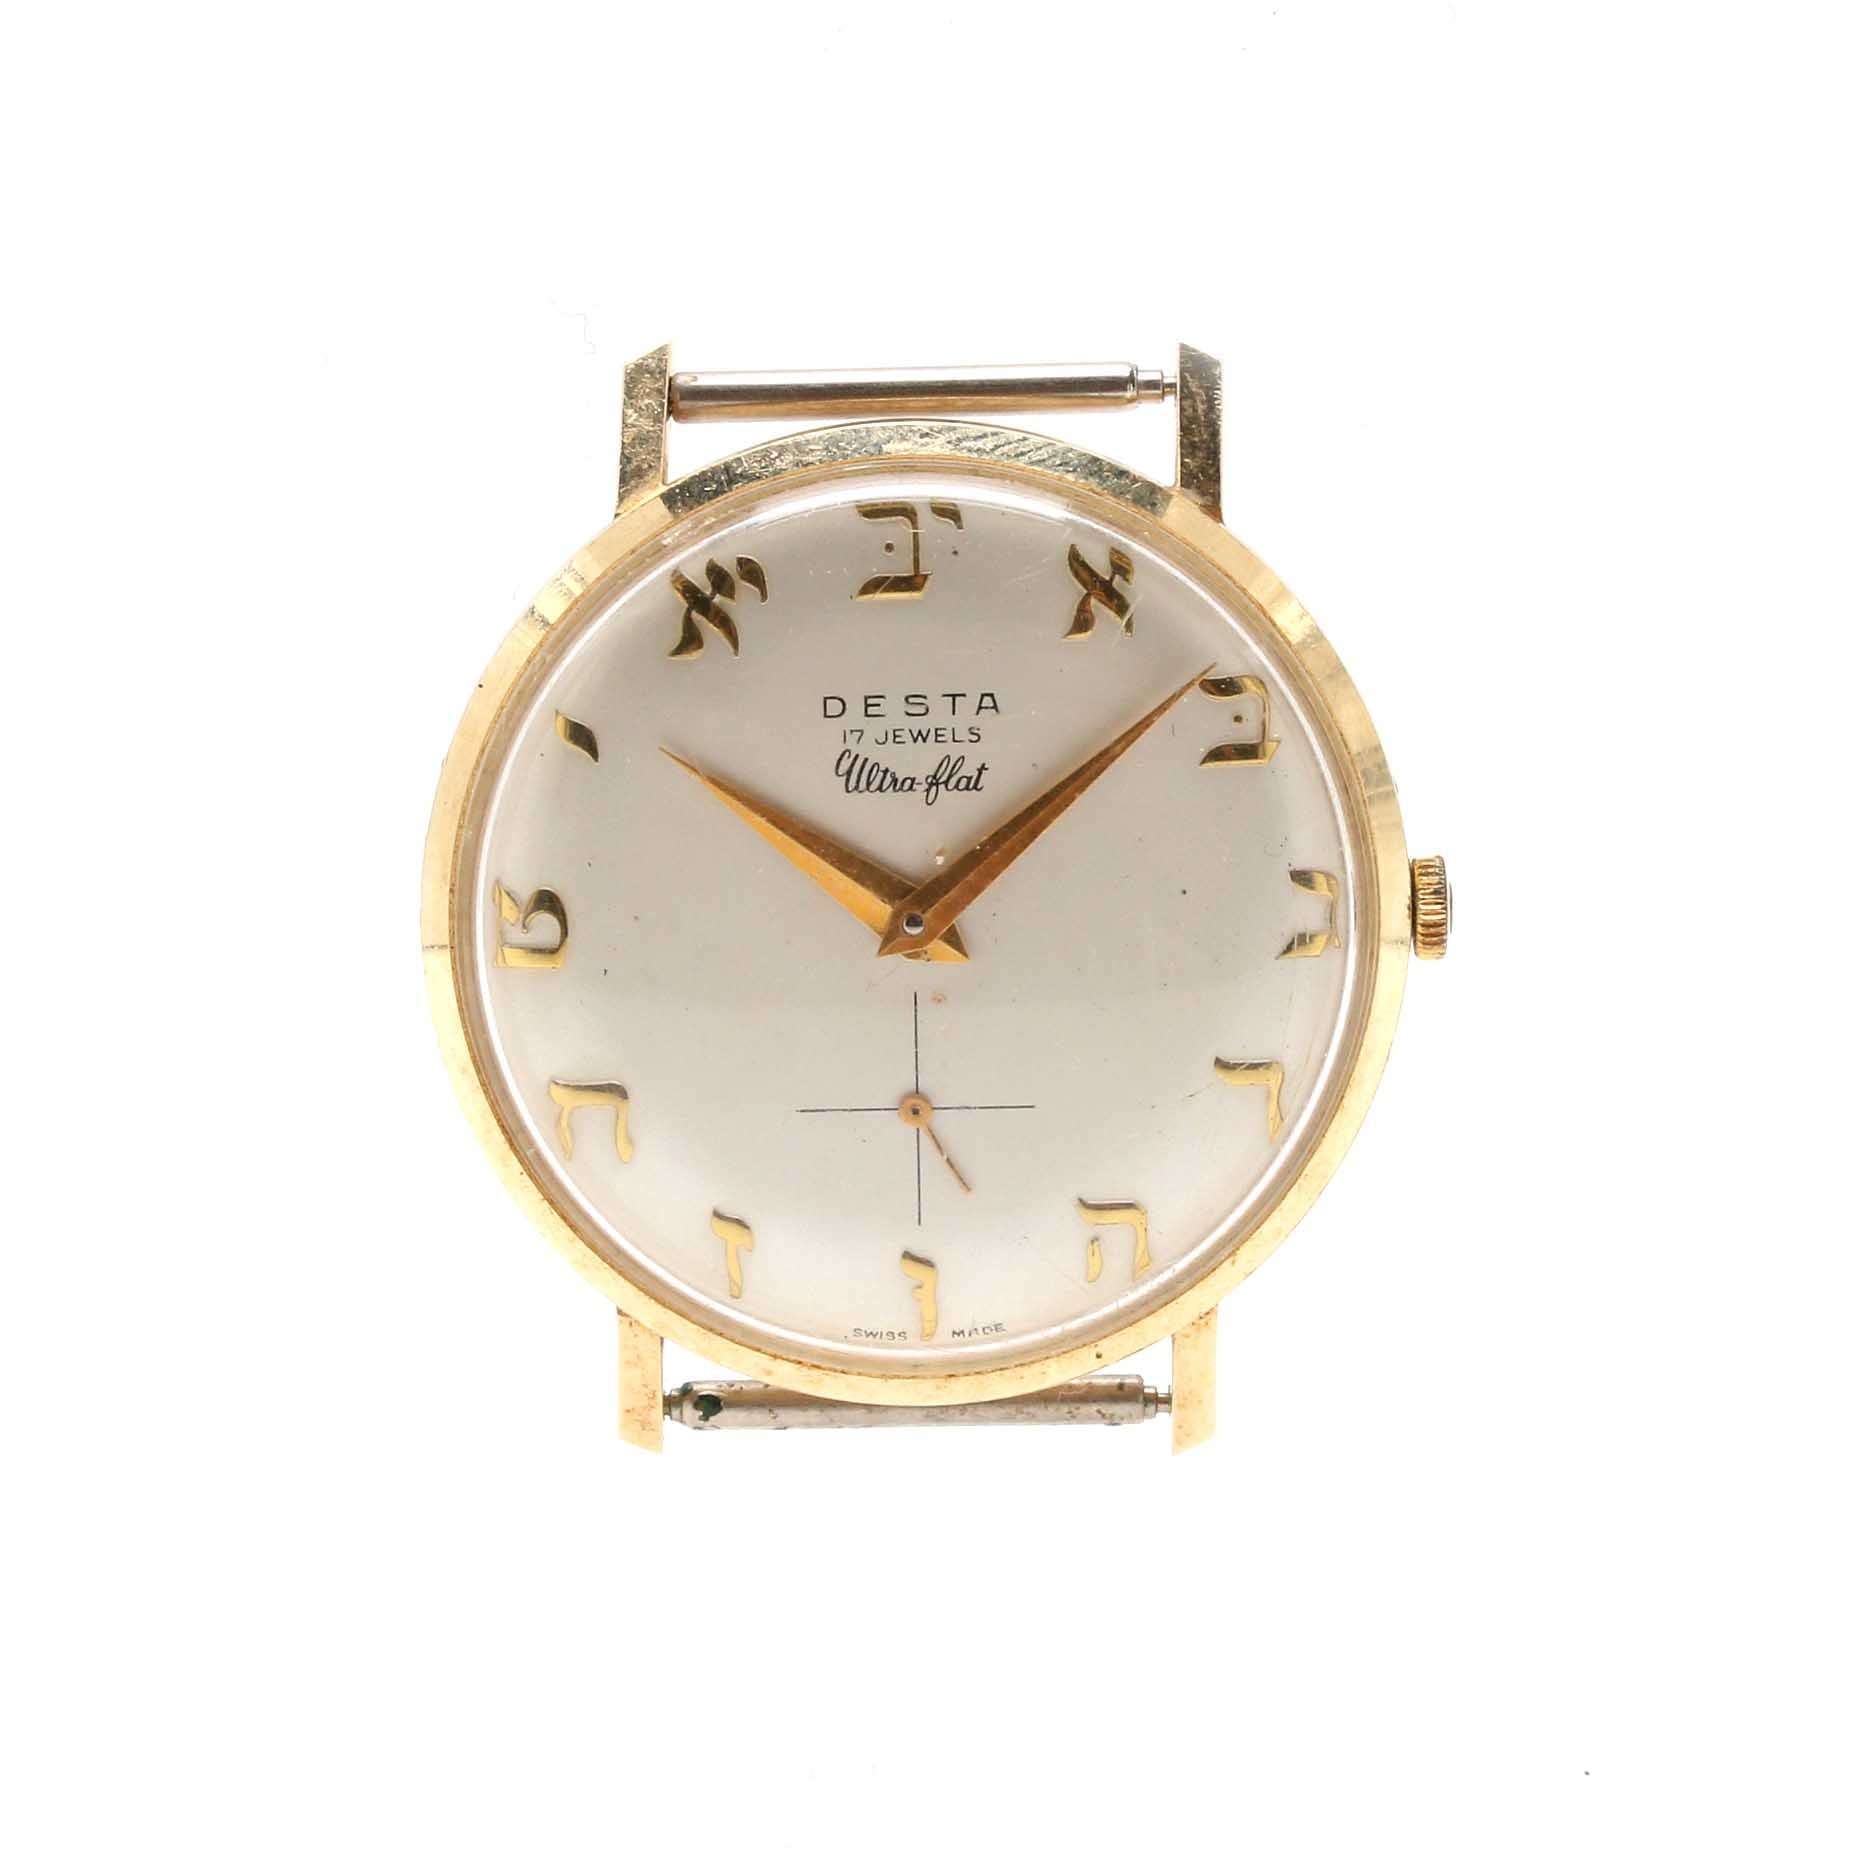 Desta 14K Yellow Gold Wristwatch With Hebrew Numerals